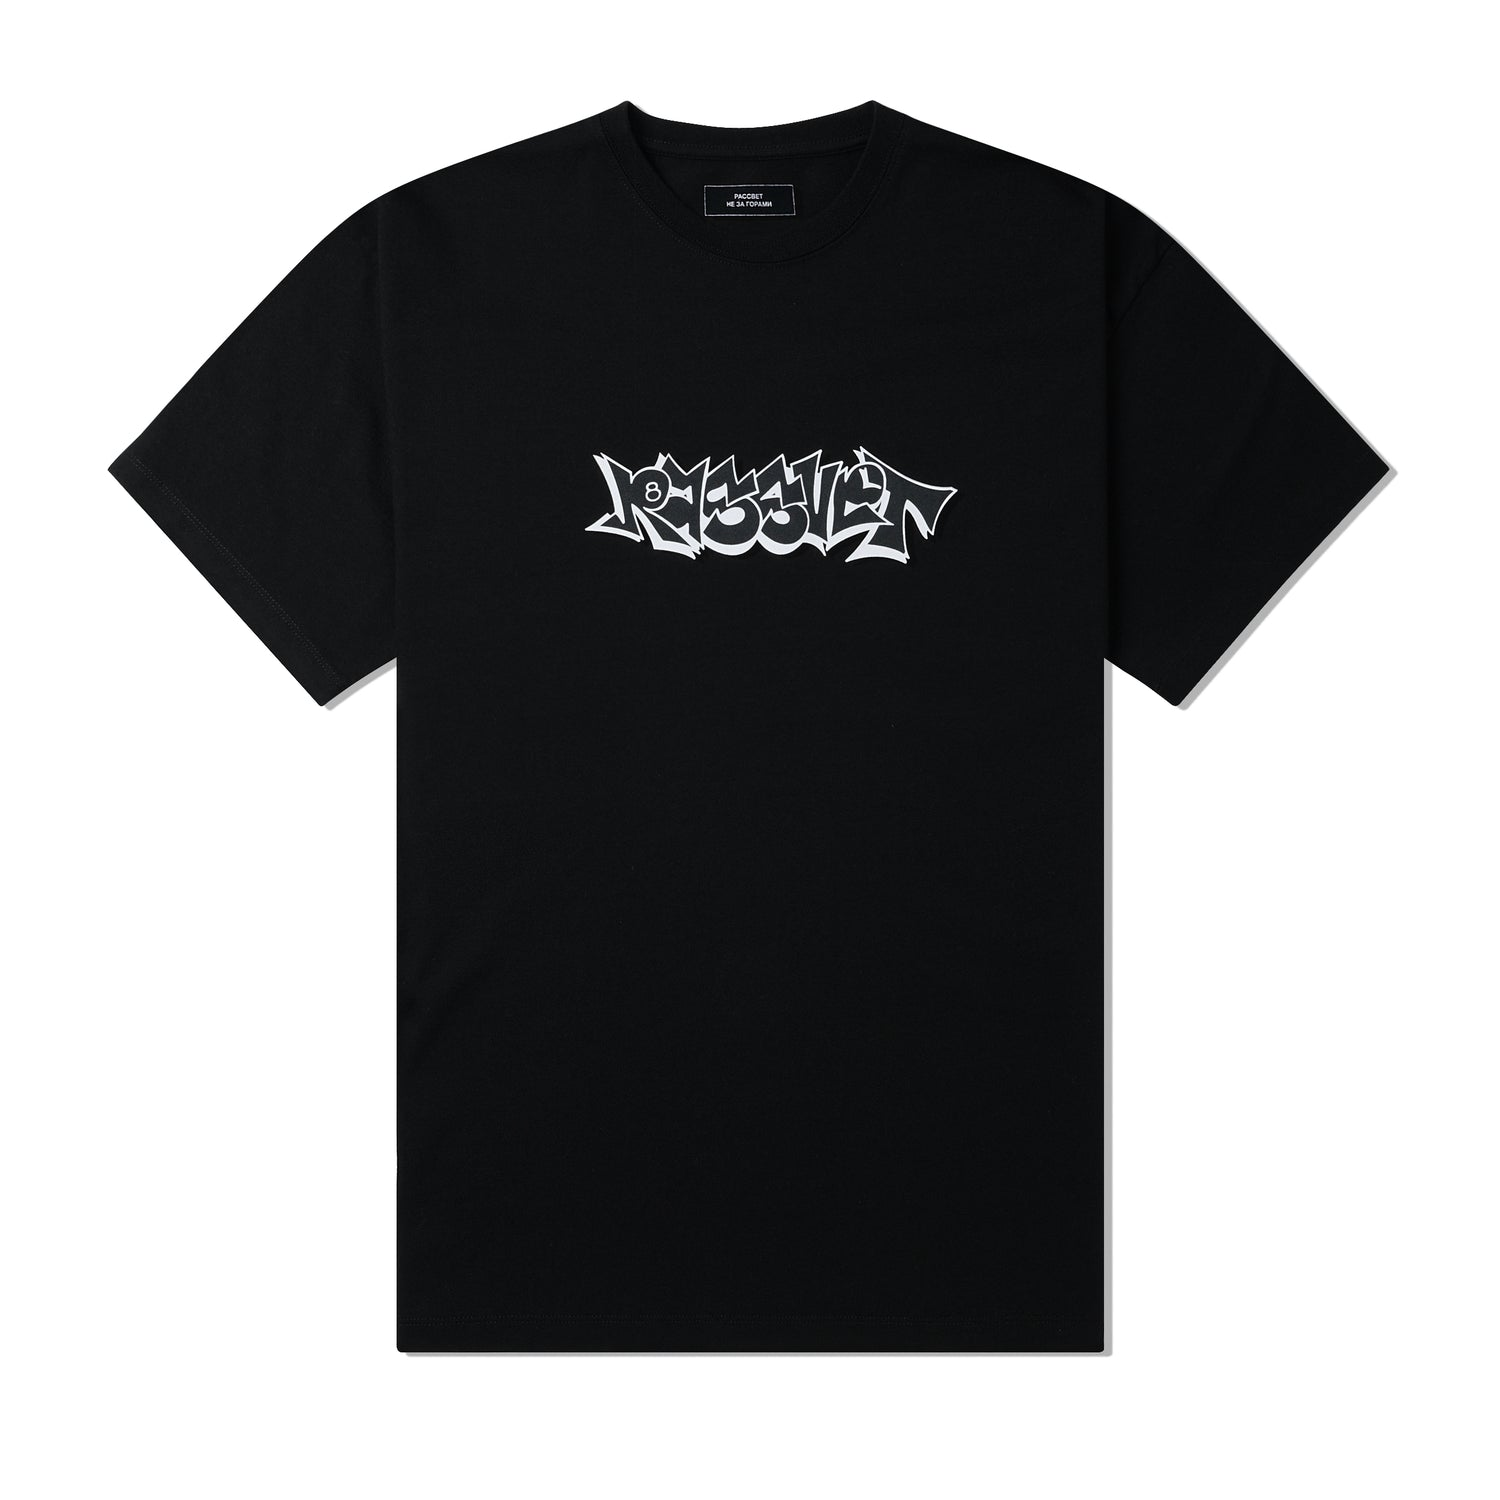 Graffiti Tee, Black